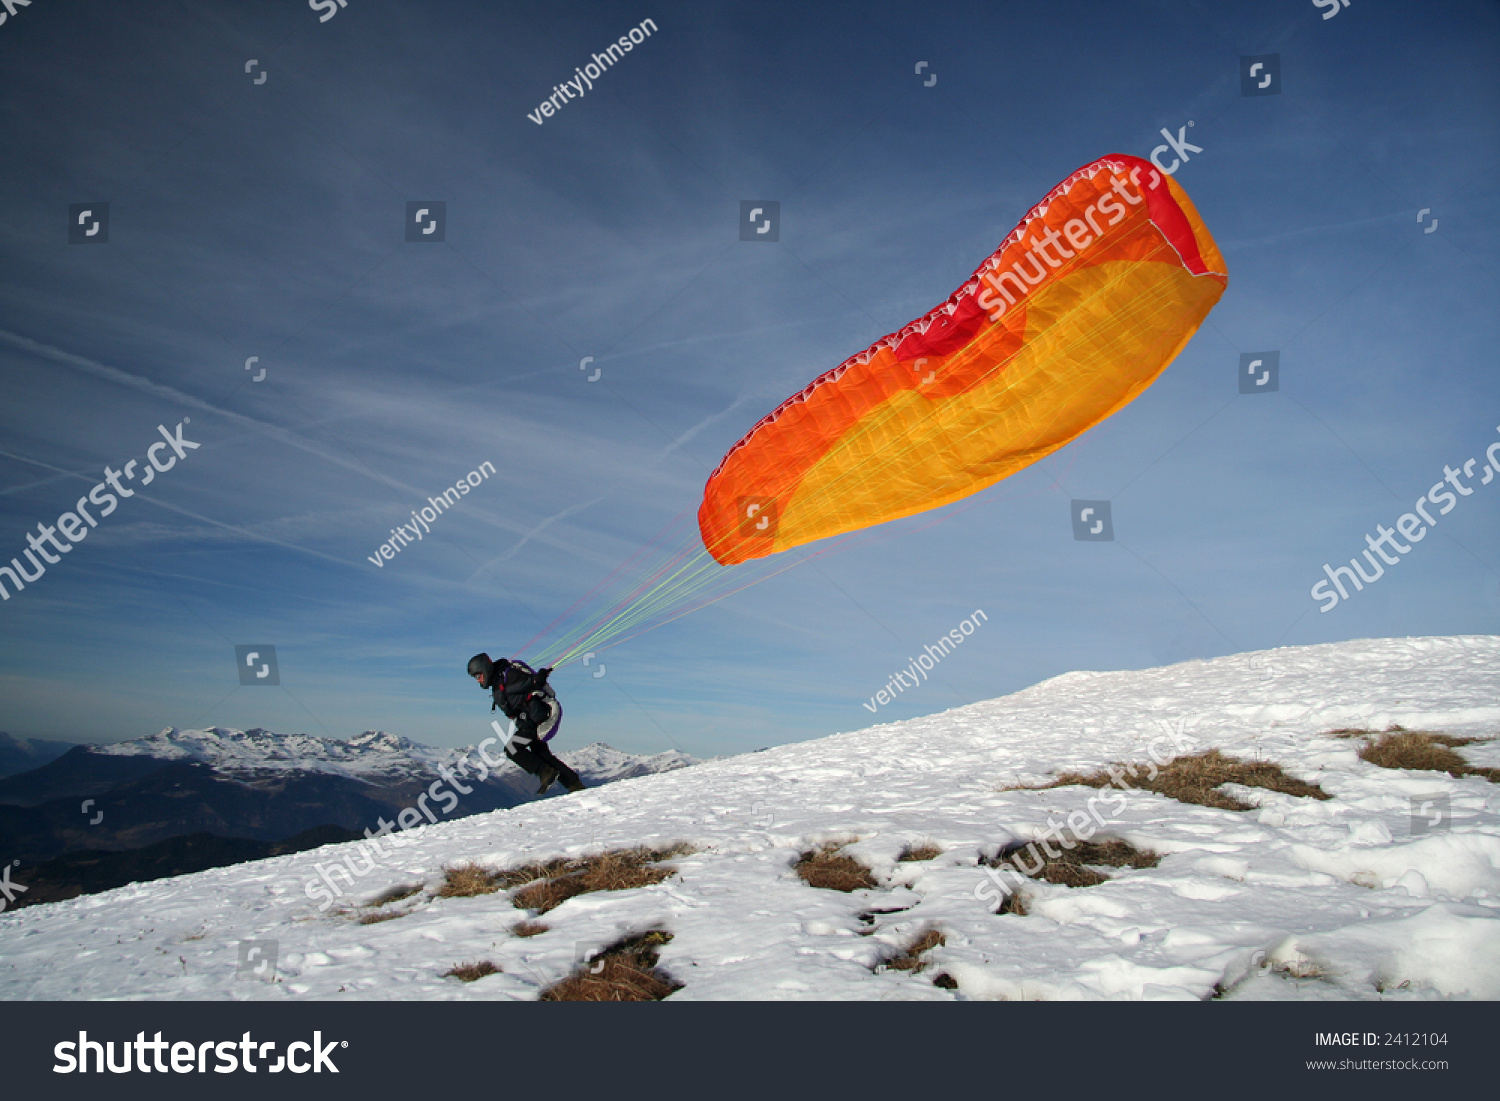 Paragliding Take Off Stock Photo 2412104 : Shutterstock